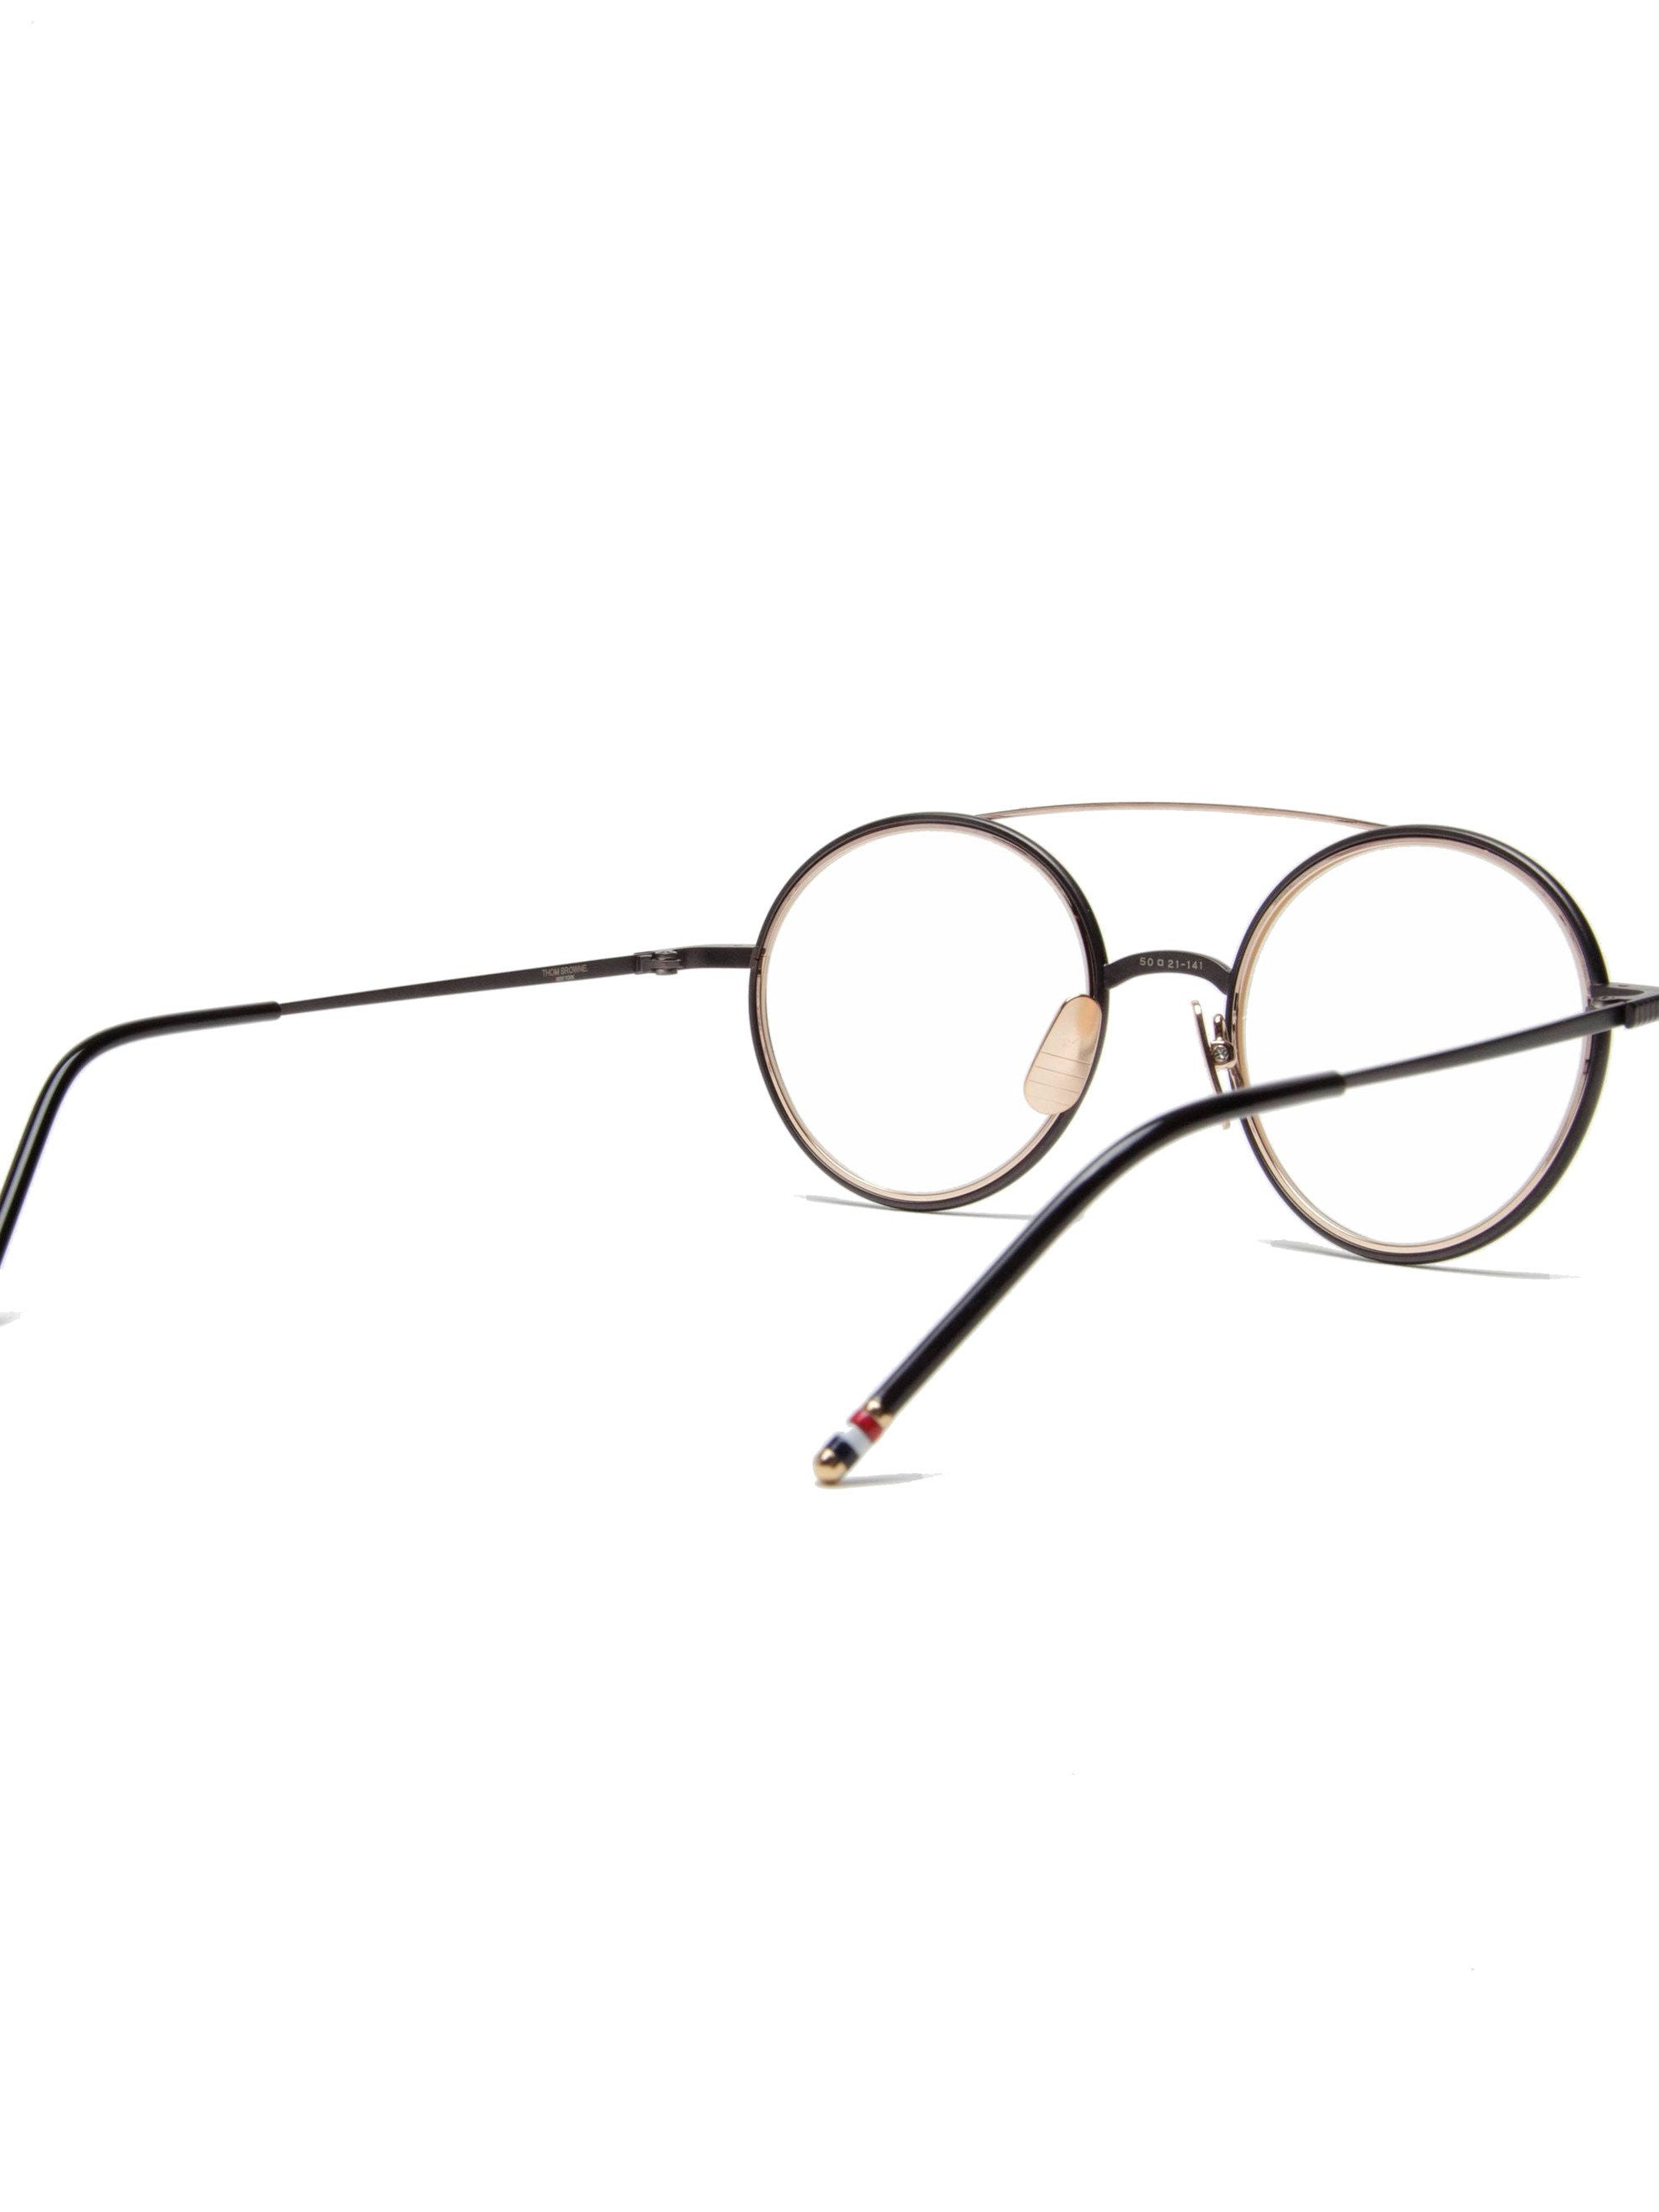 Optical TB-108 (Black Iron - 12K Gold) 4